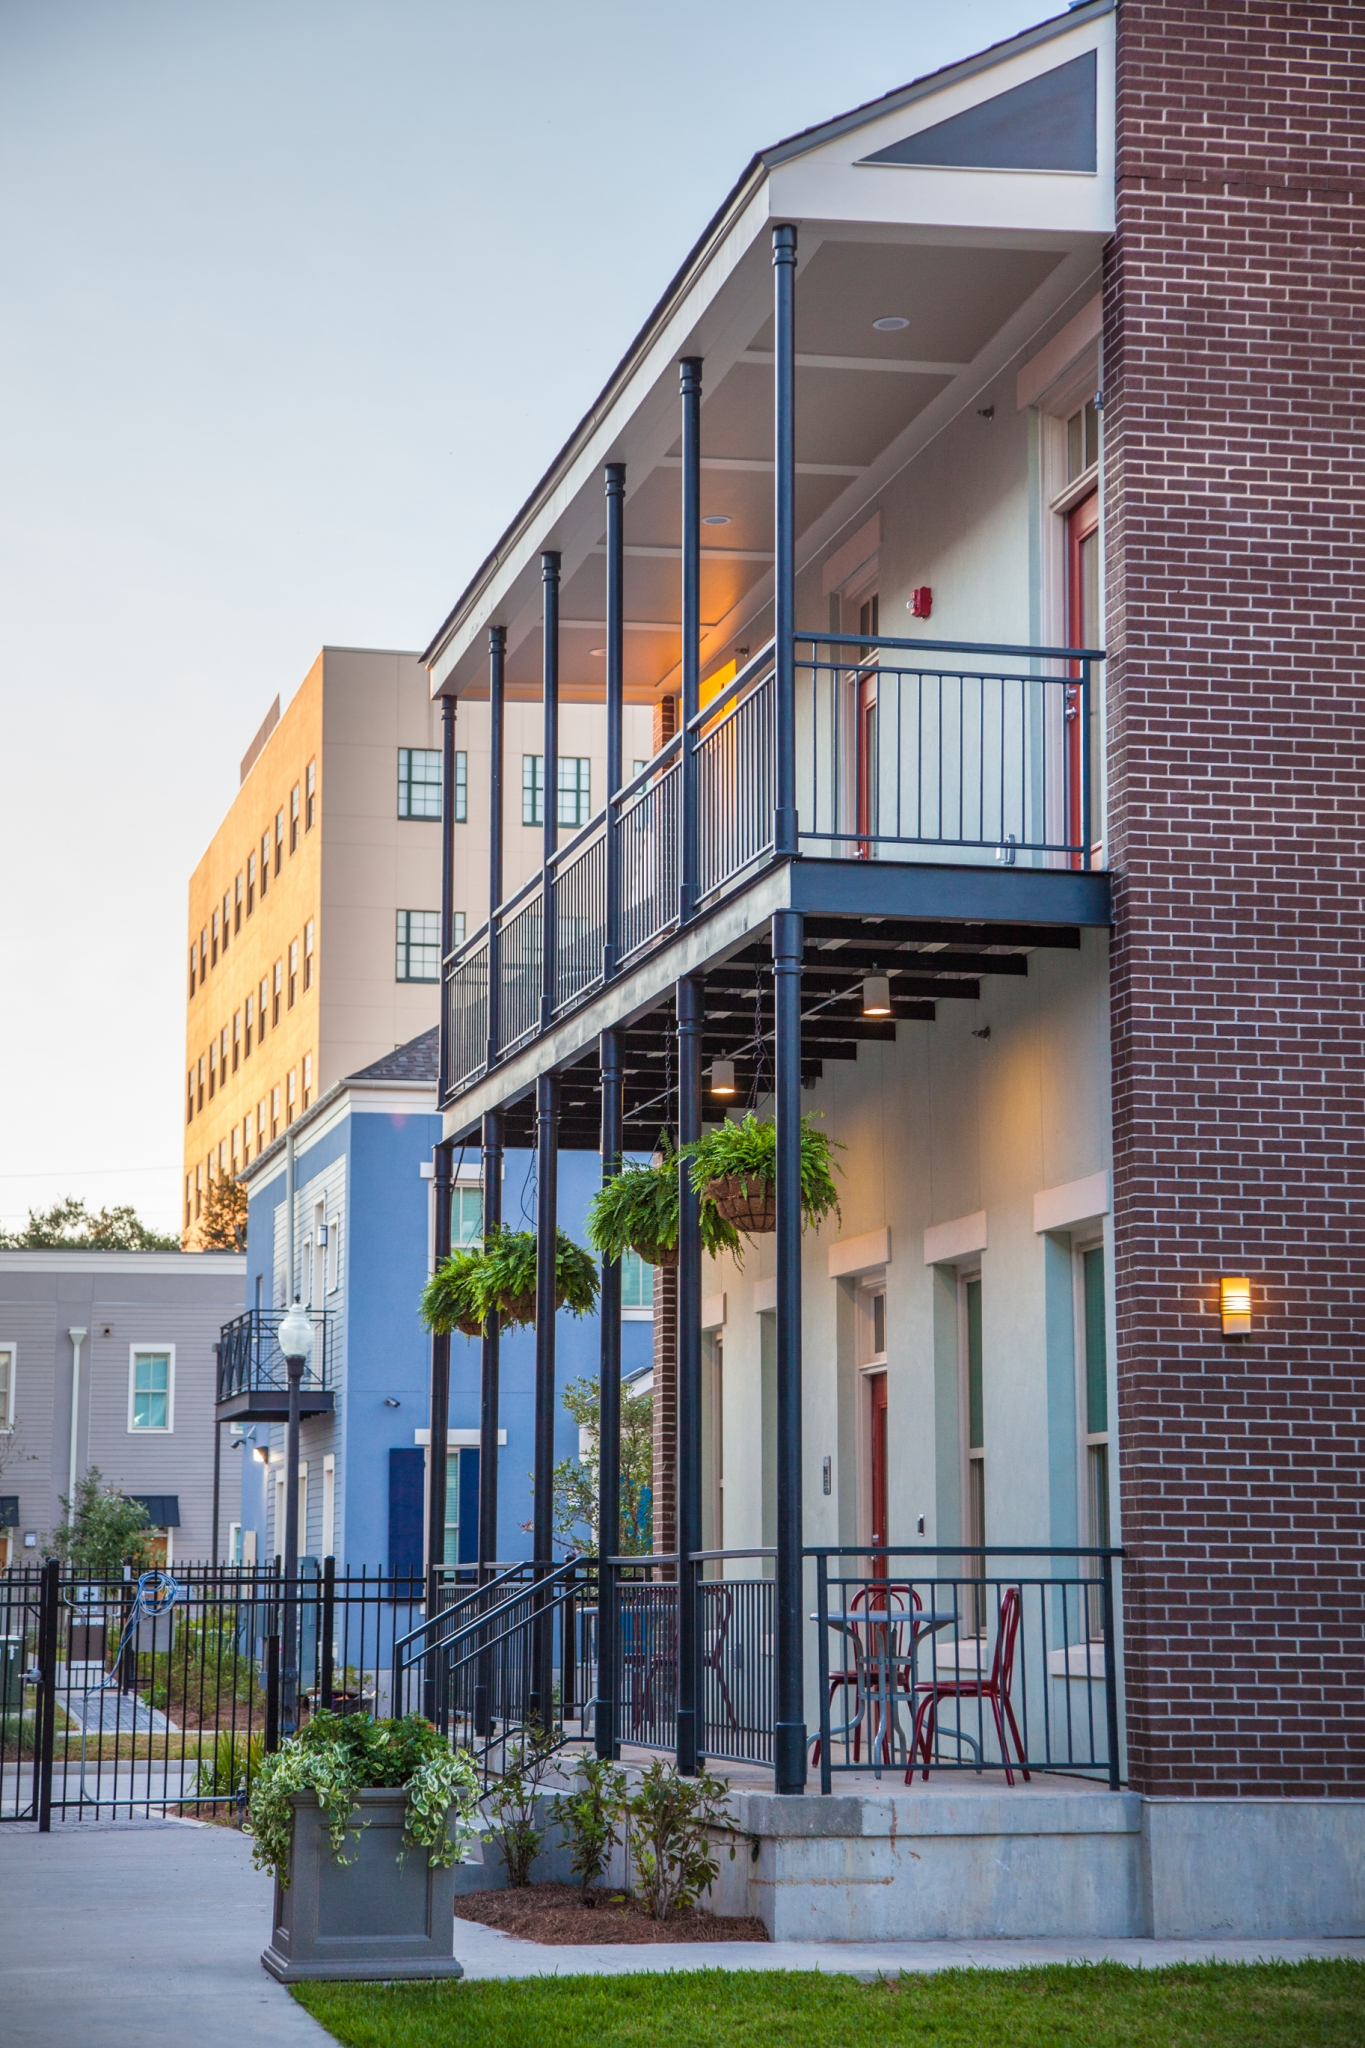 bienville basin apartment rentals